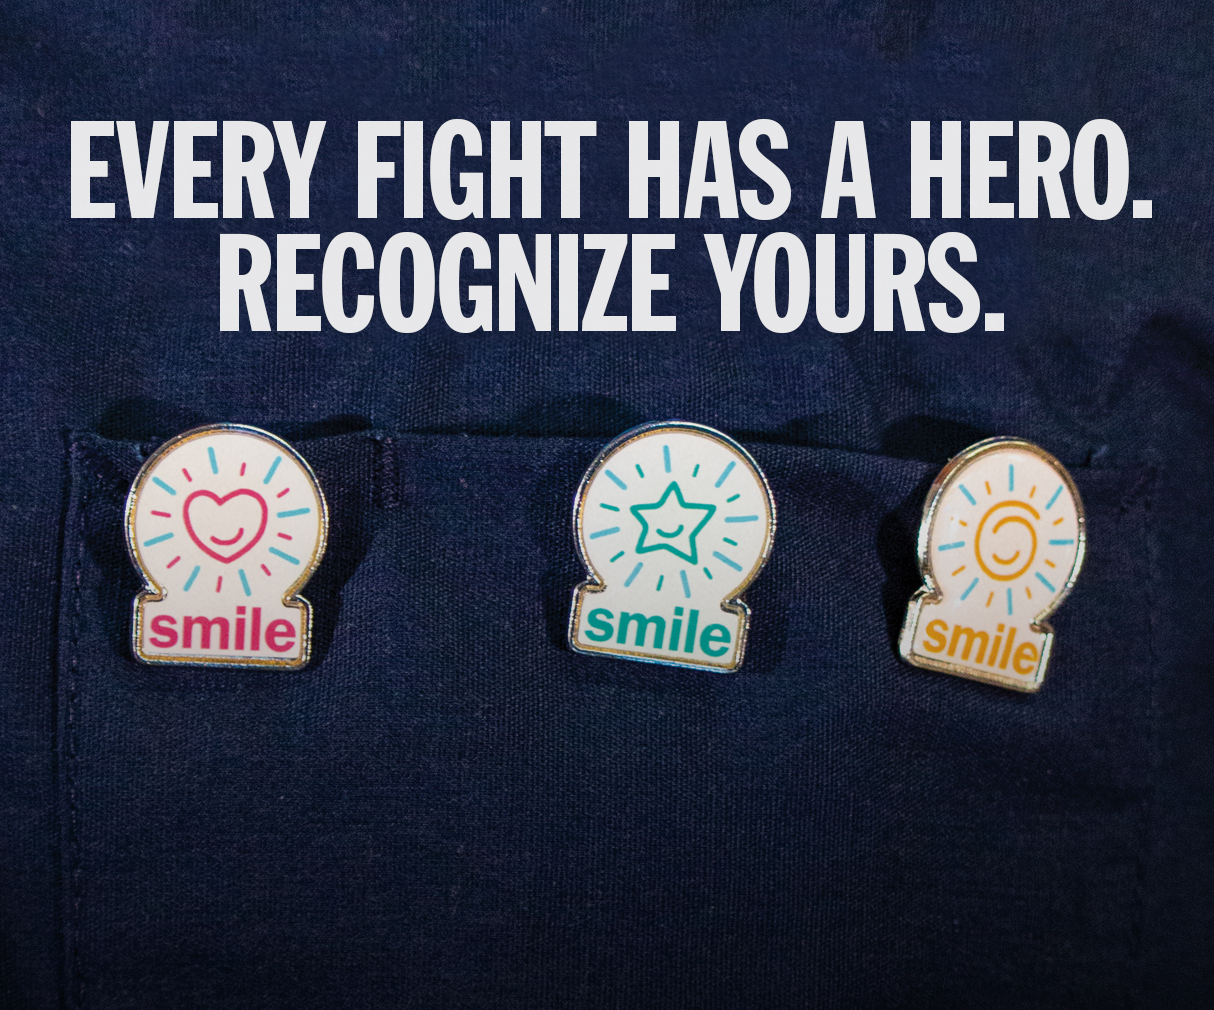 Every fight has a hero. Recognize yours.